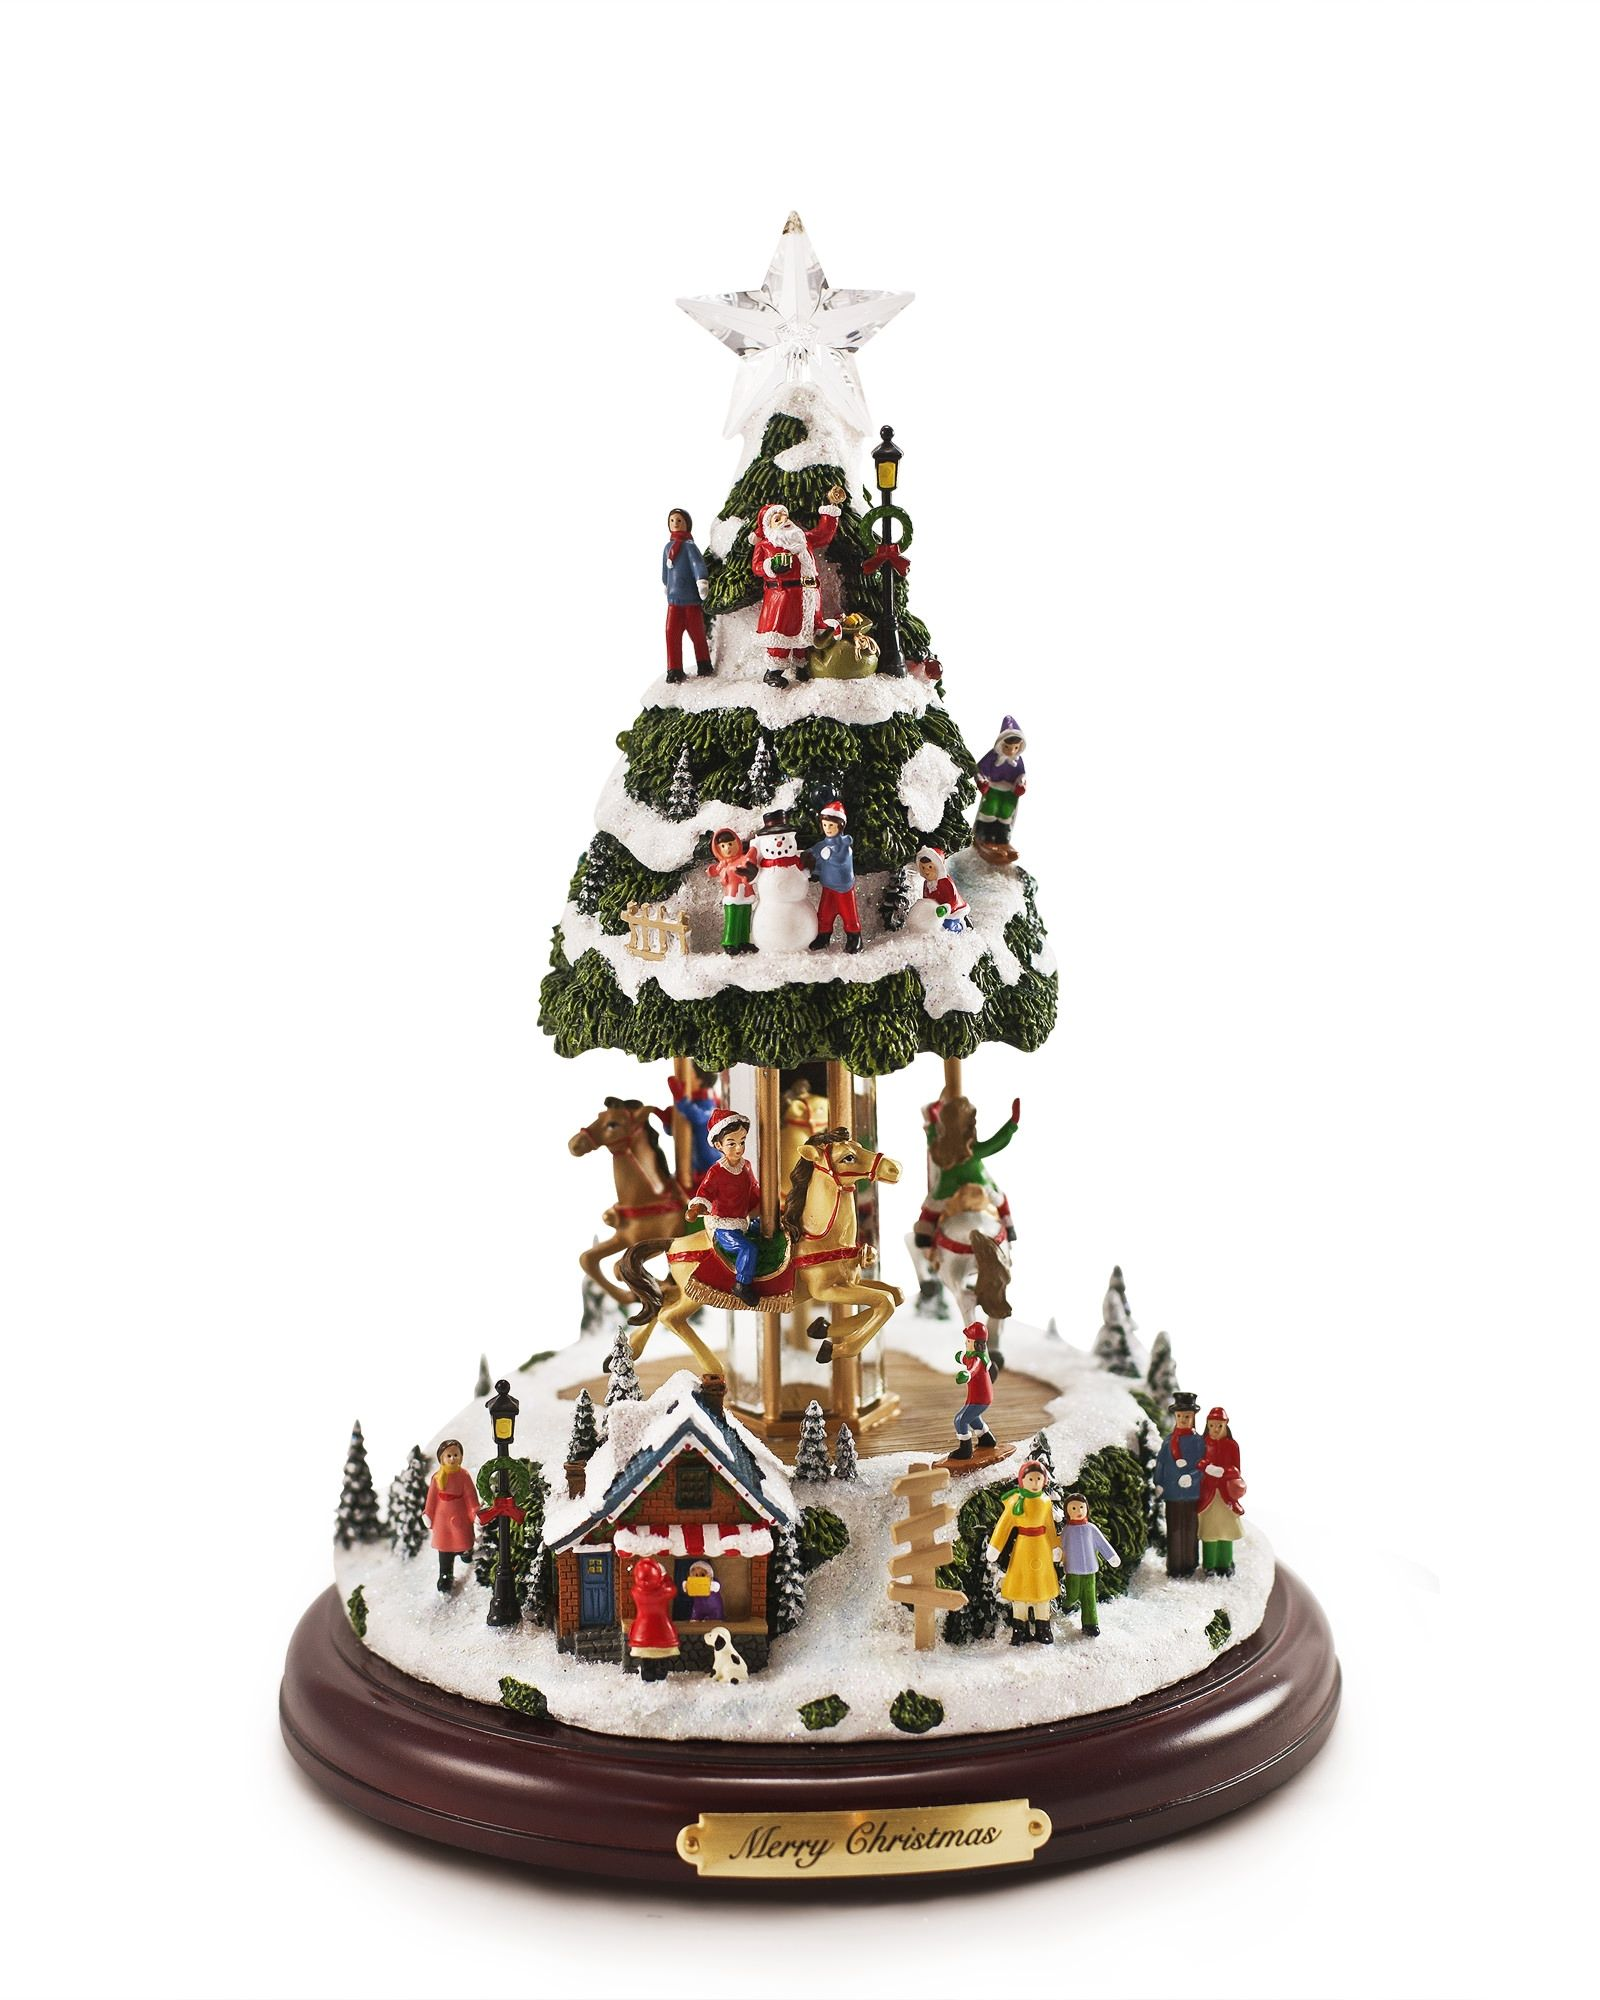 17 Best images about Christmas Collectibles on Pinterest | Advent ...